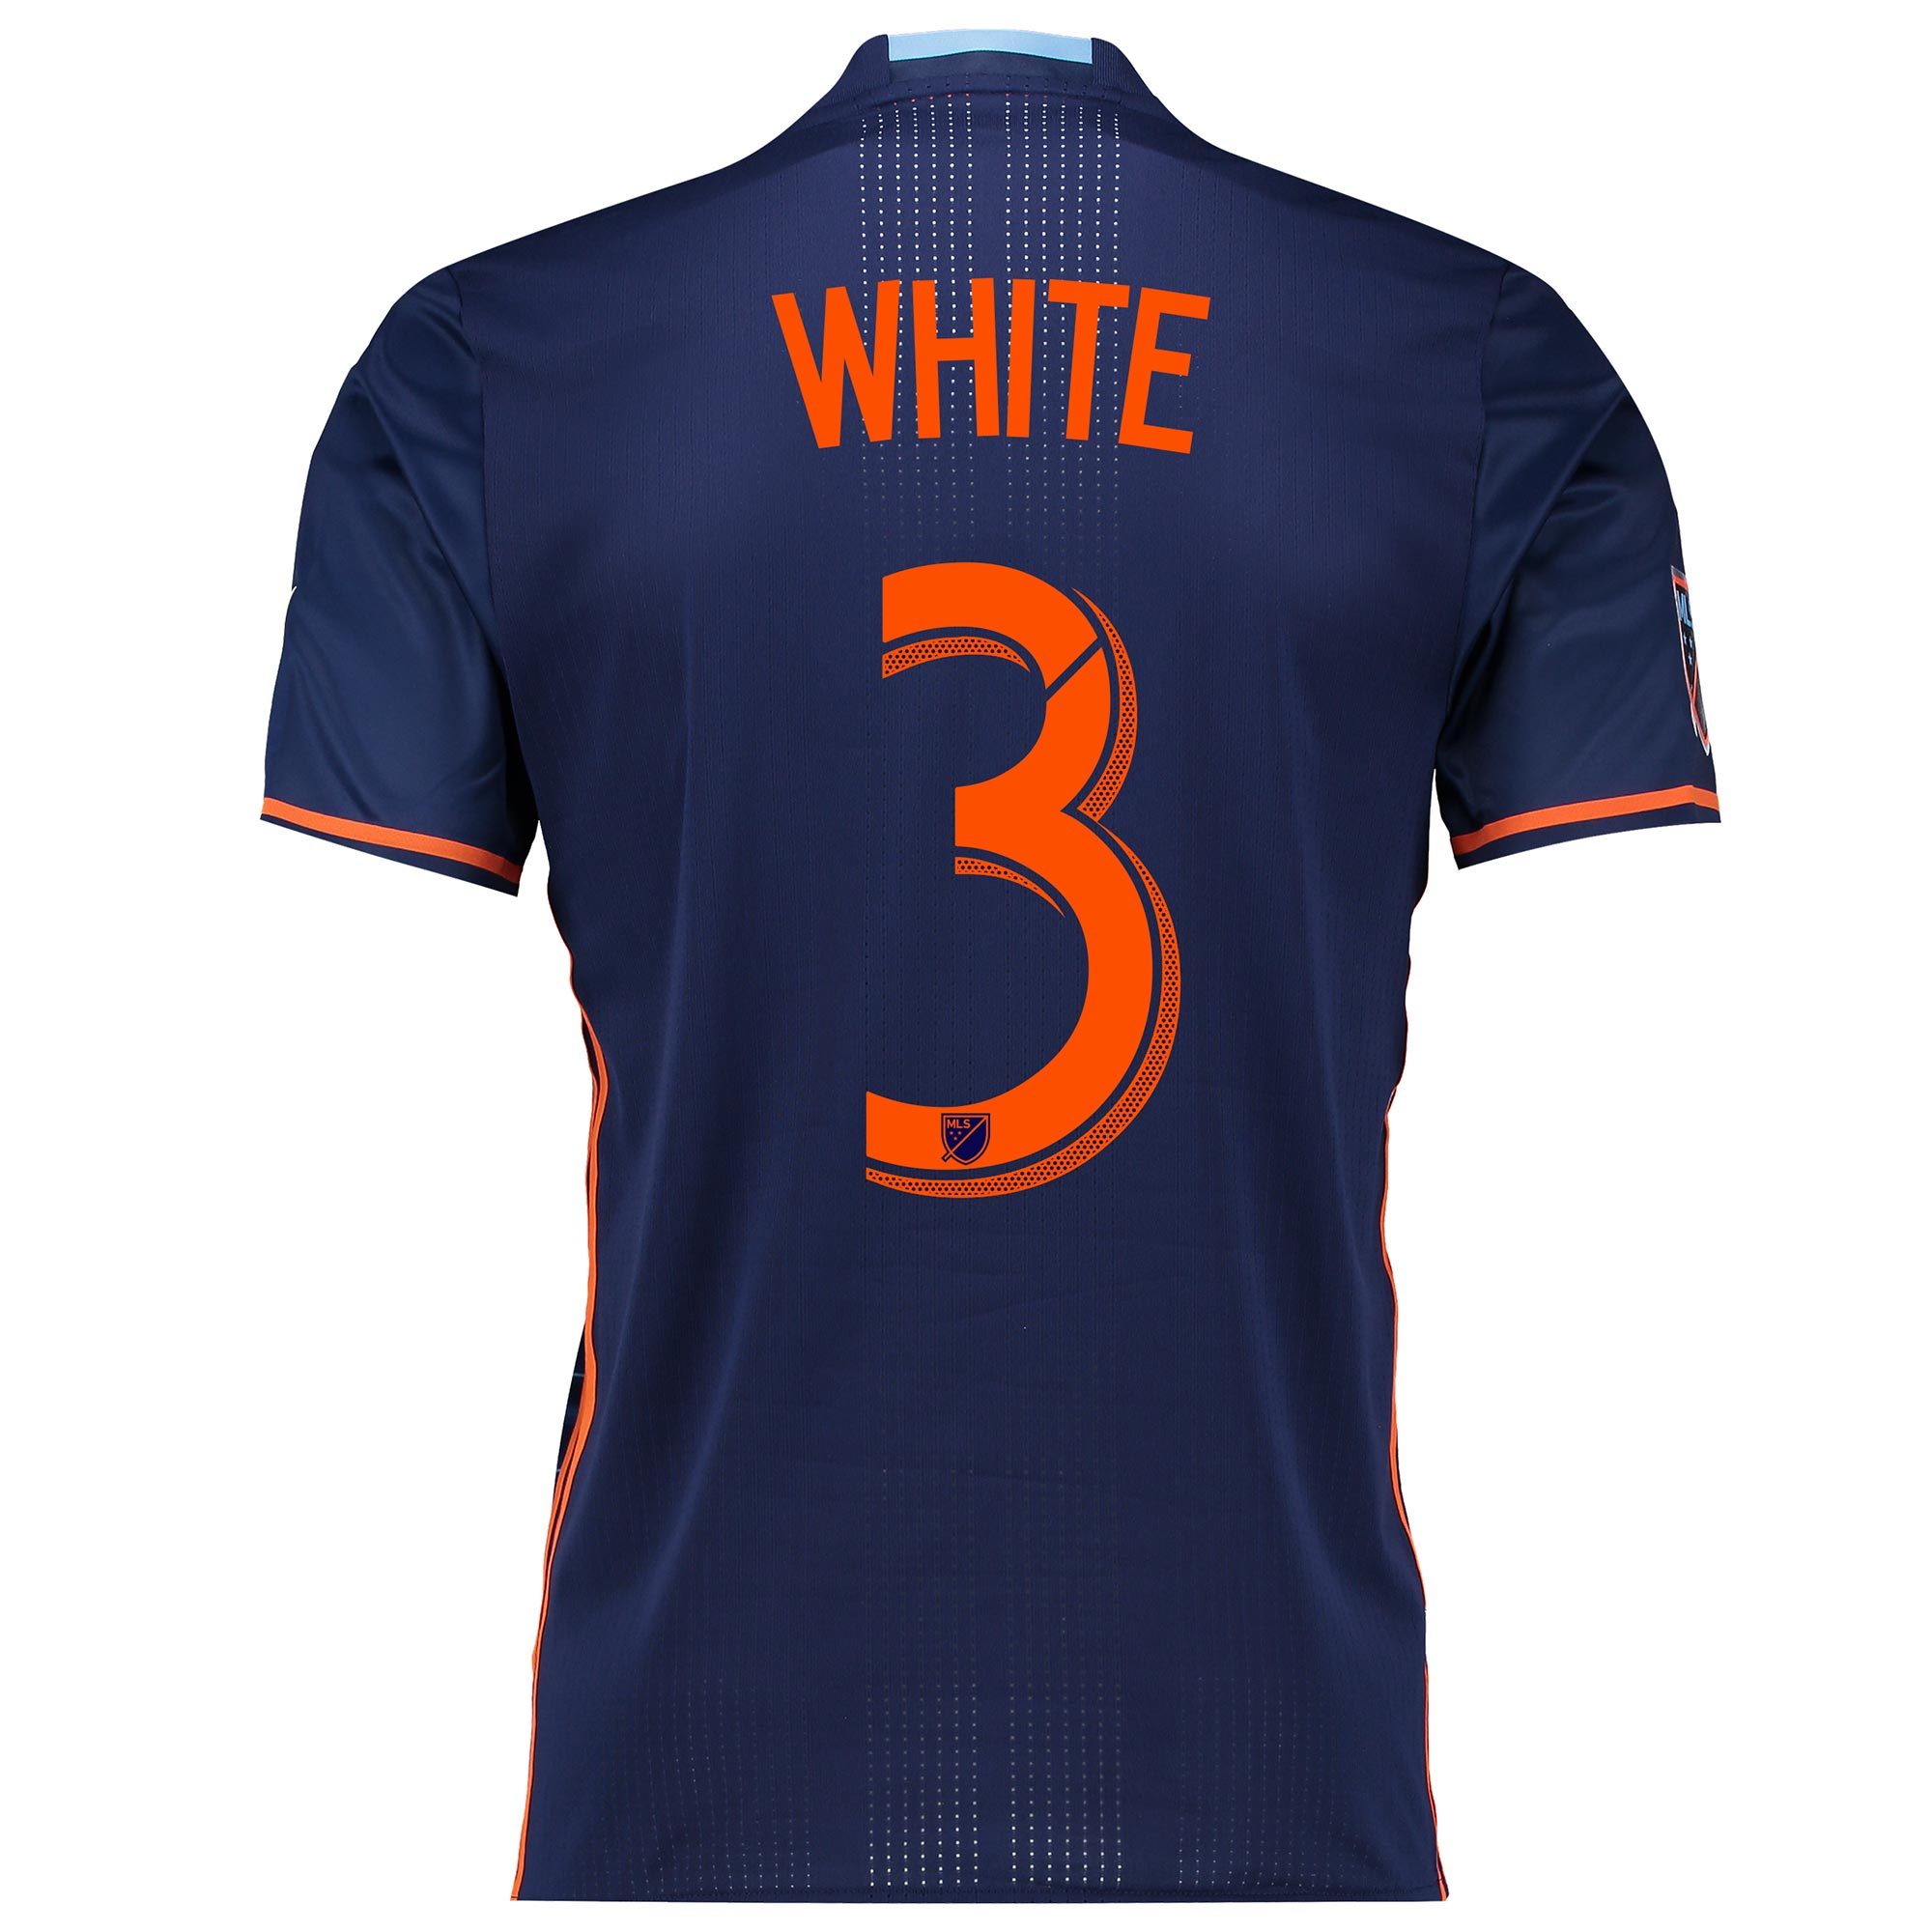 New York City FC Authentic Away Shirt 2016 with White 3 printing